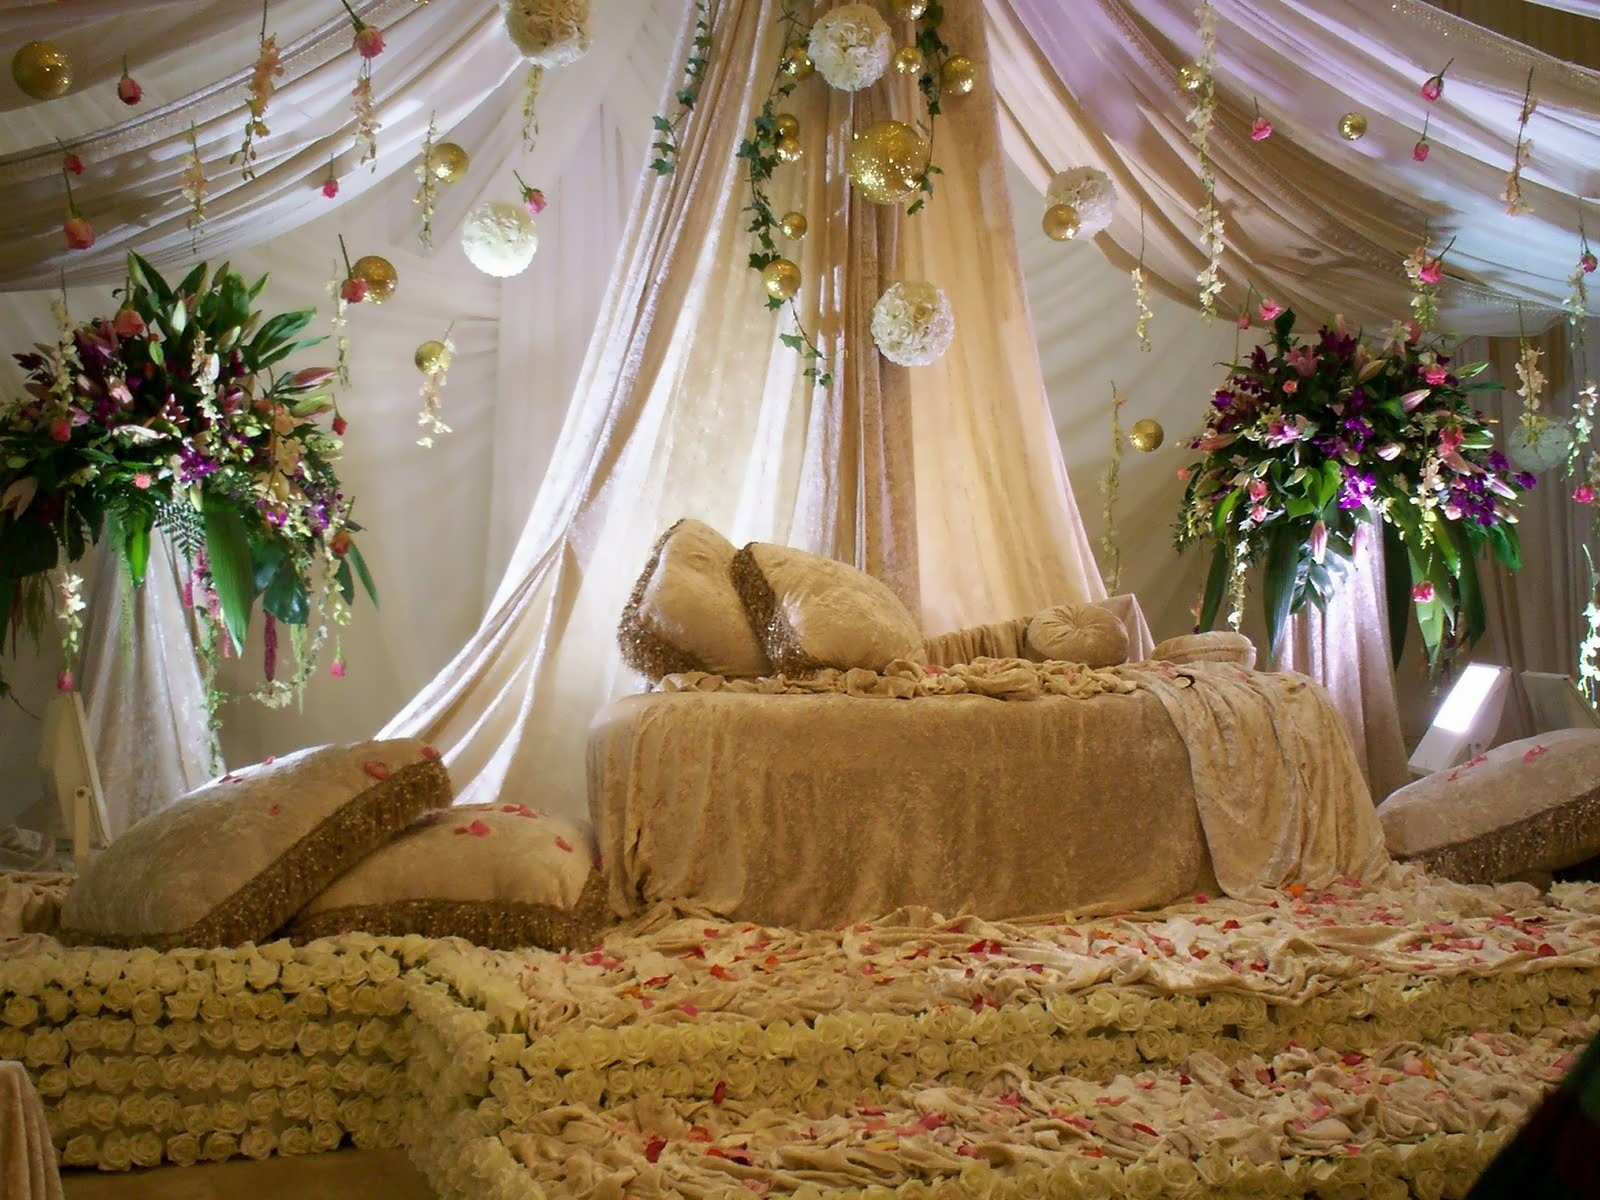 Home Wedding Decoration Ideas luxury winter wedding decoration ideas budget in home interior ideas with winter wedding decoration ideas budget Decoration Best Wedding Decorations Ideas